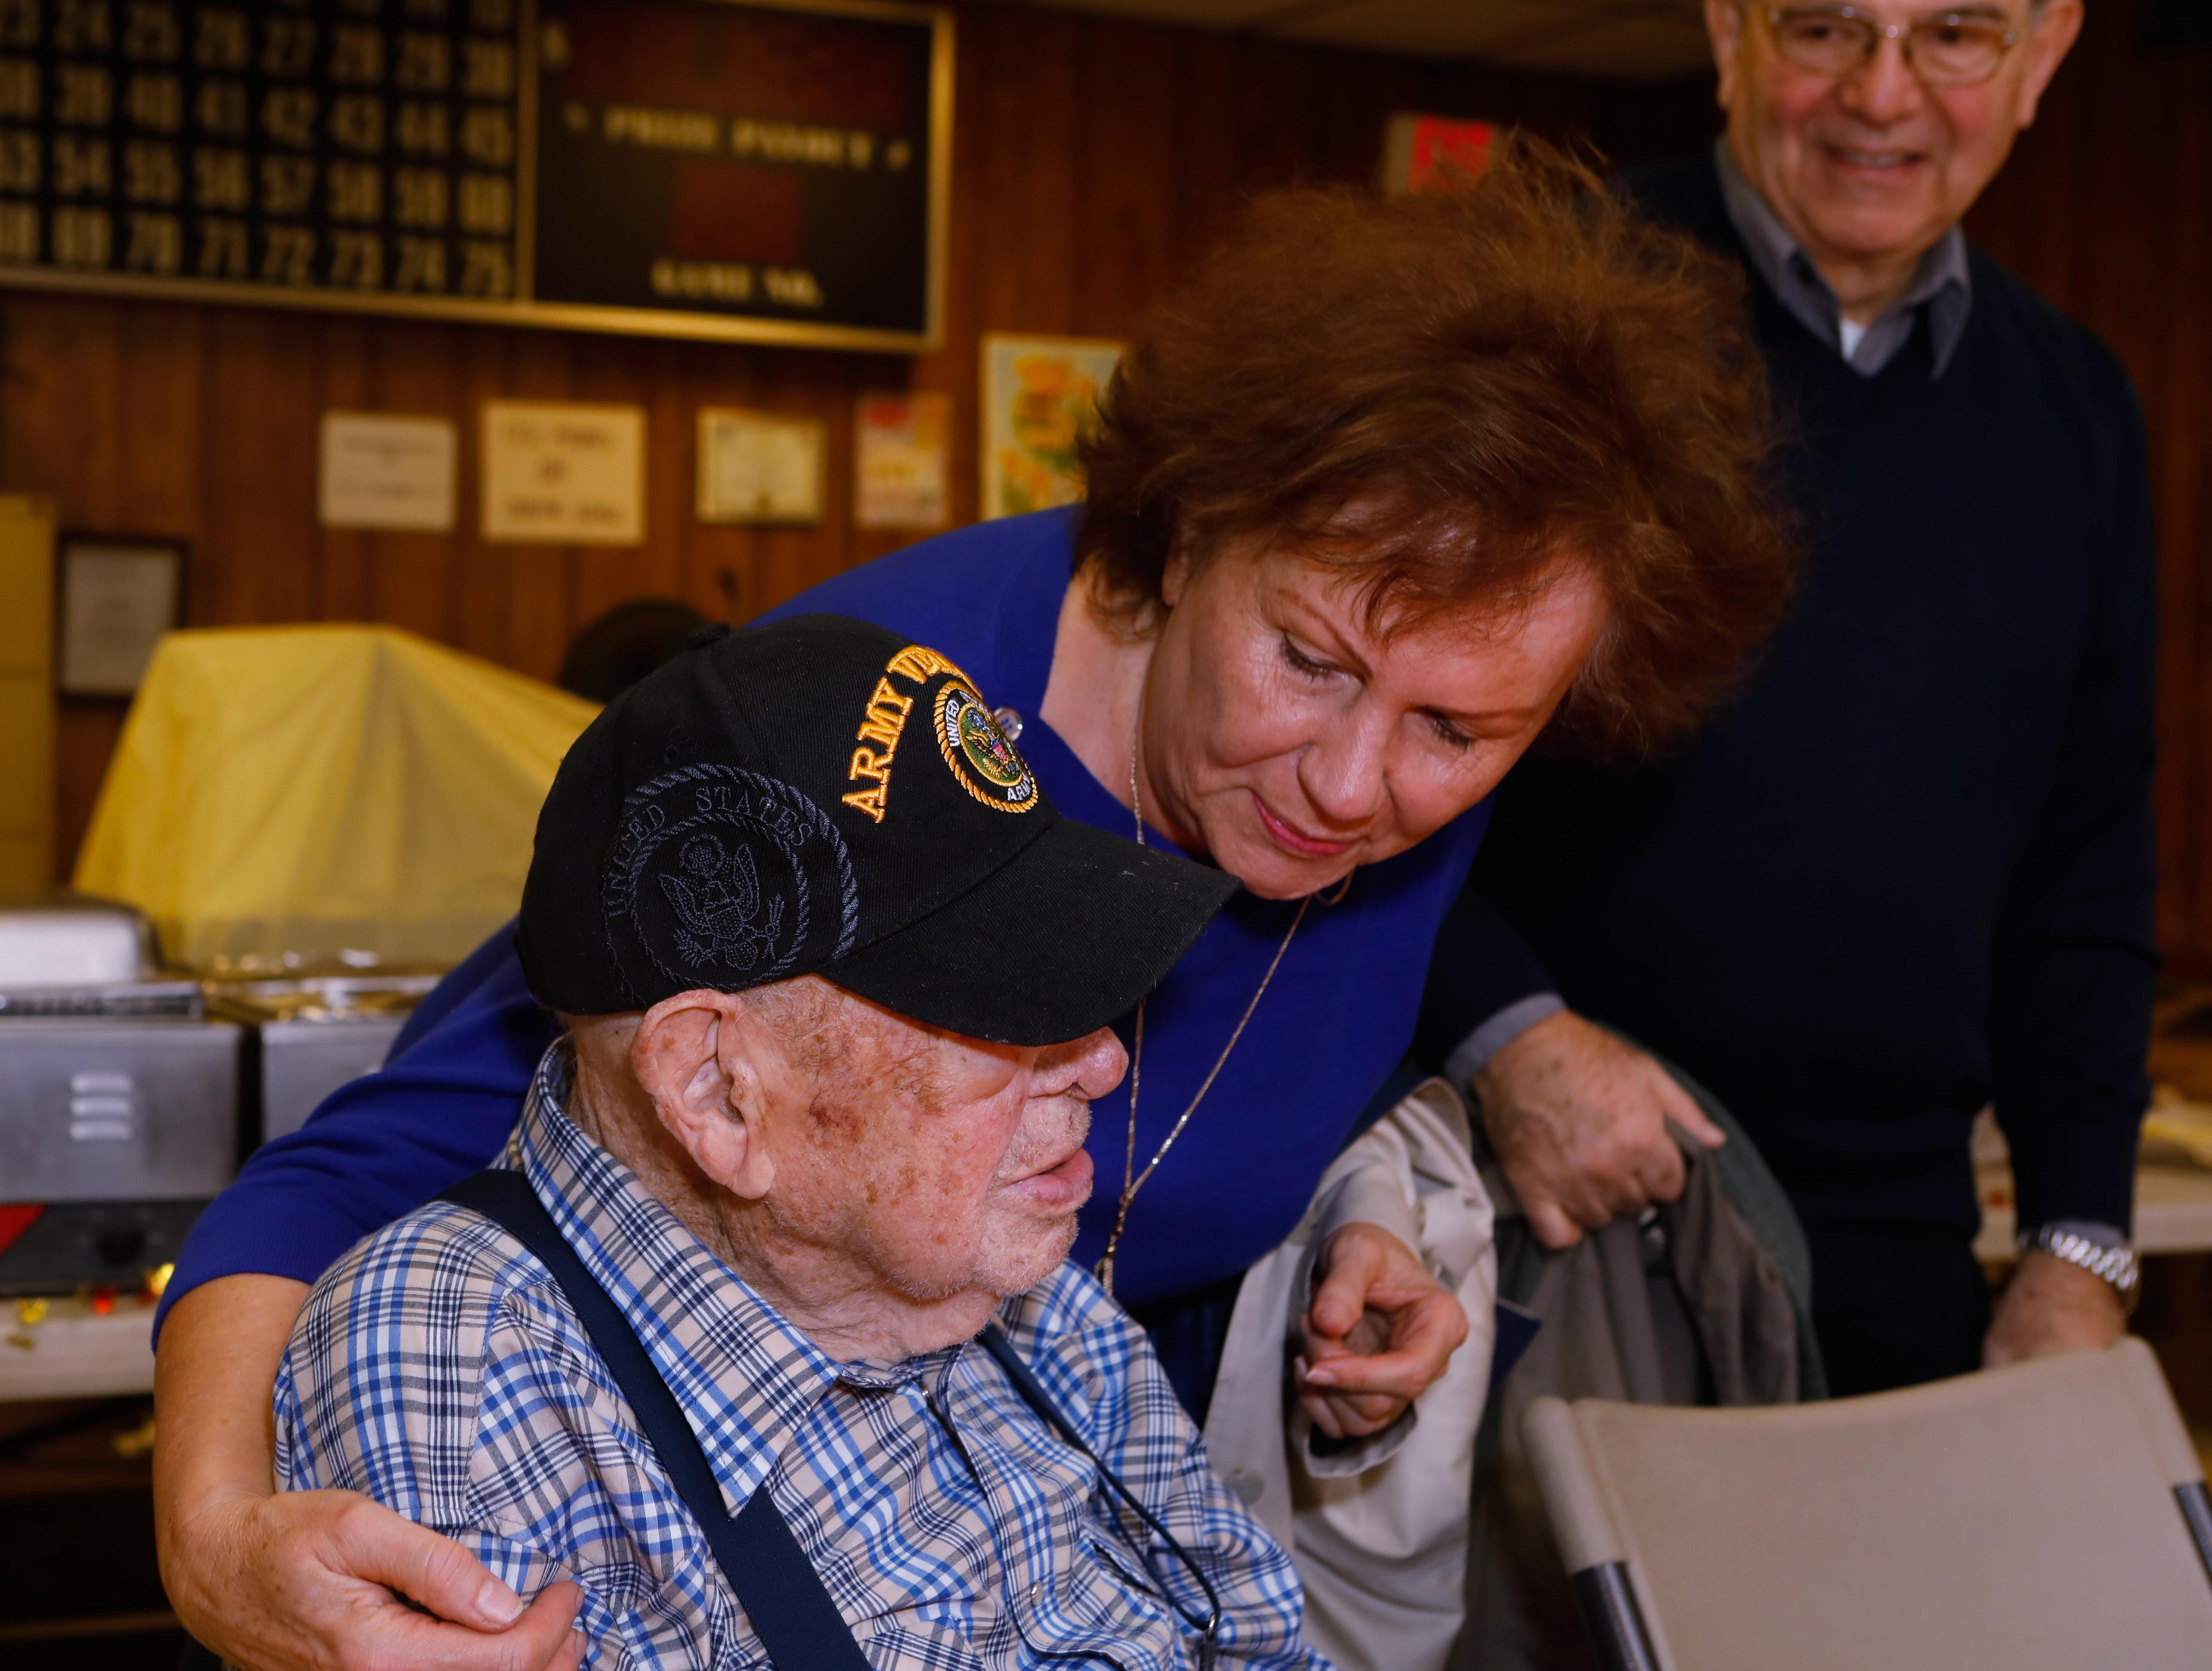 Christine Vergara, gives her neighbor Vince Plaster a hug Sunday, Nov. 18, 2018 at VFW Post 3404's annual Thanksgiving dinner, where Plaster was the guest of honor for his 100th birthday.